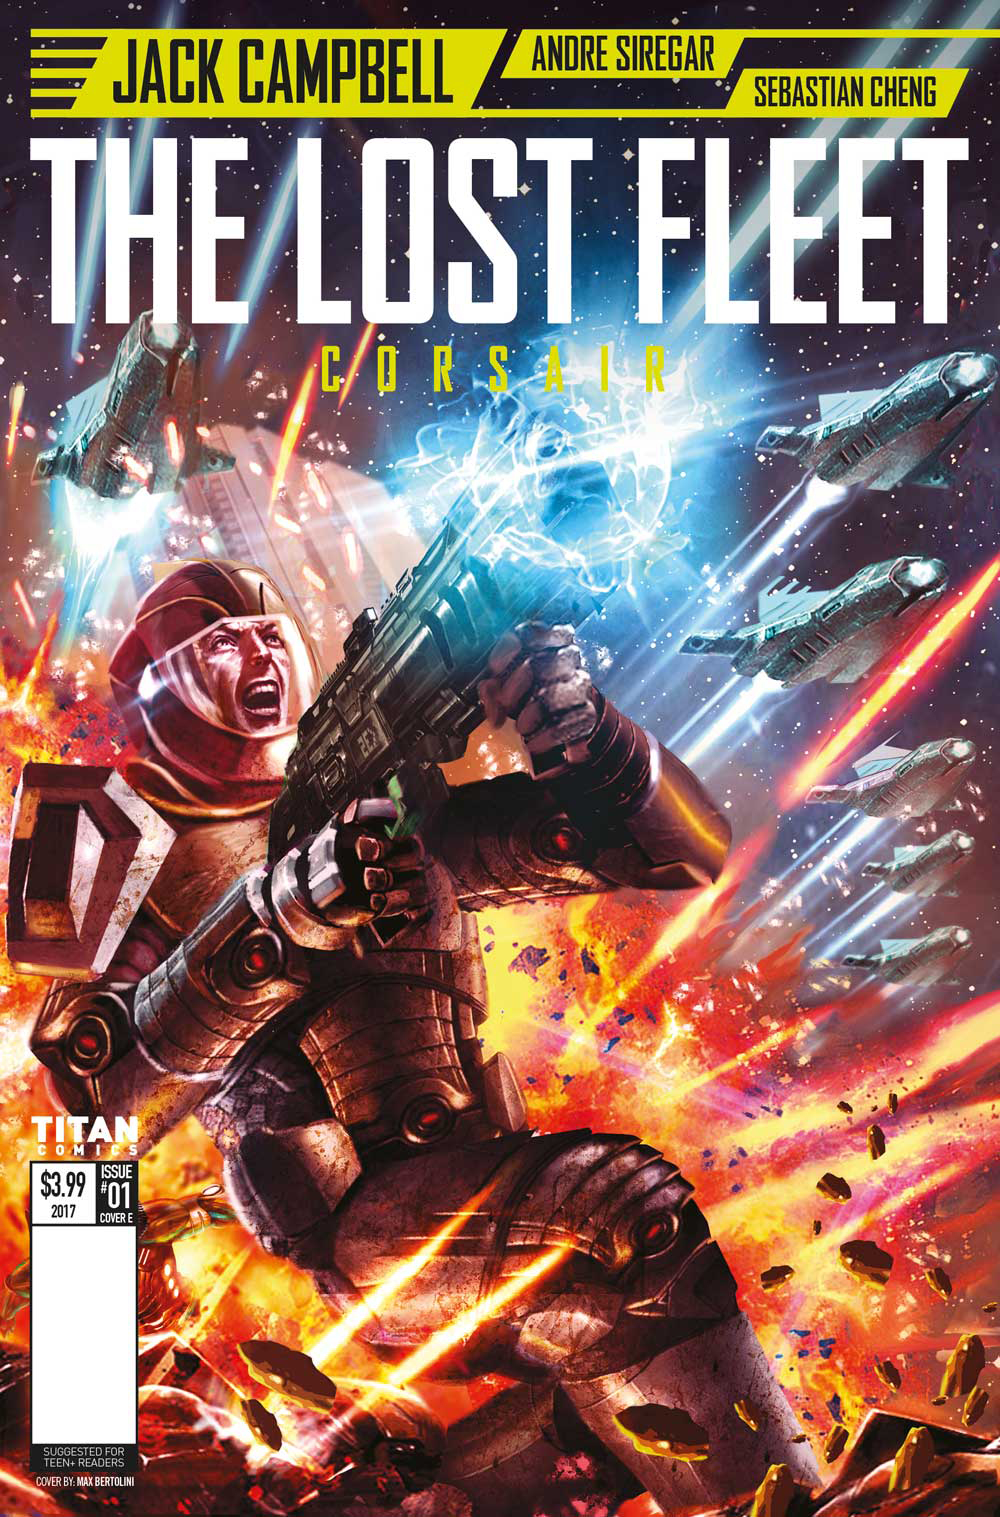 LOST FLEET CORSAIR #1 (OF 4) CVR E BERTOLINI